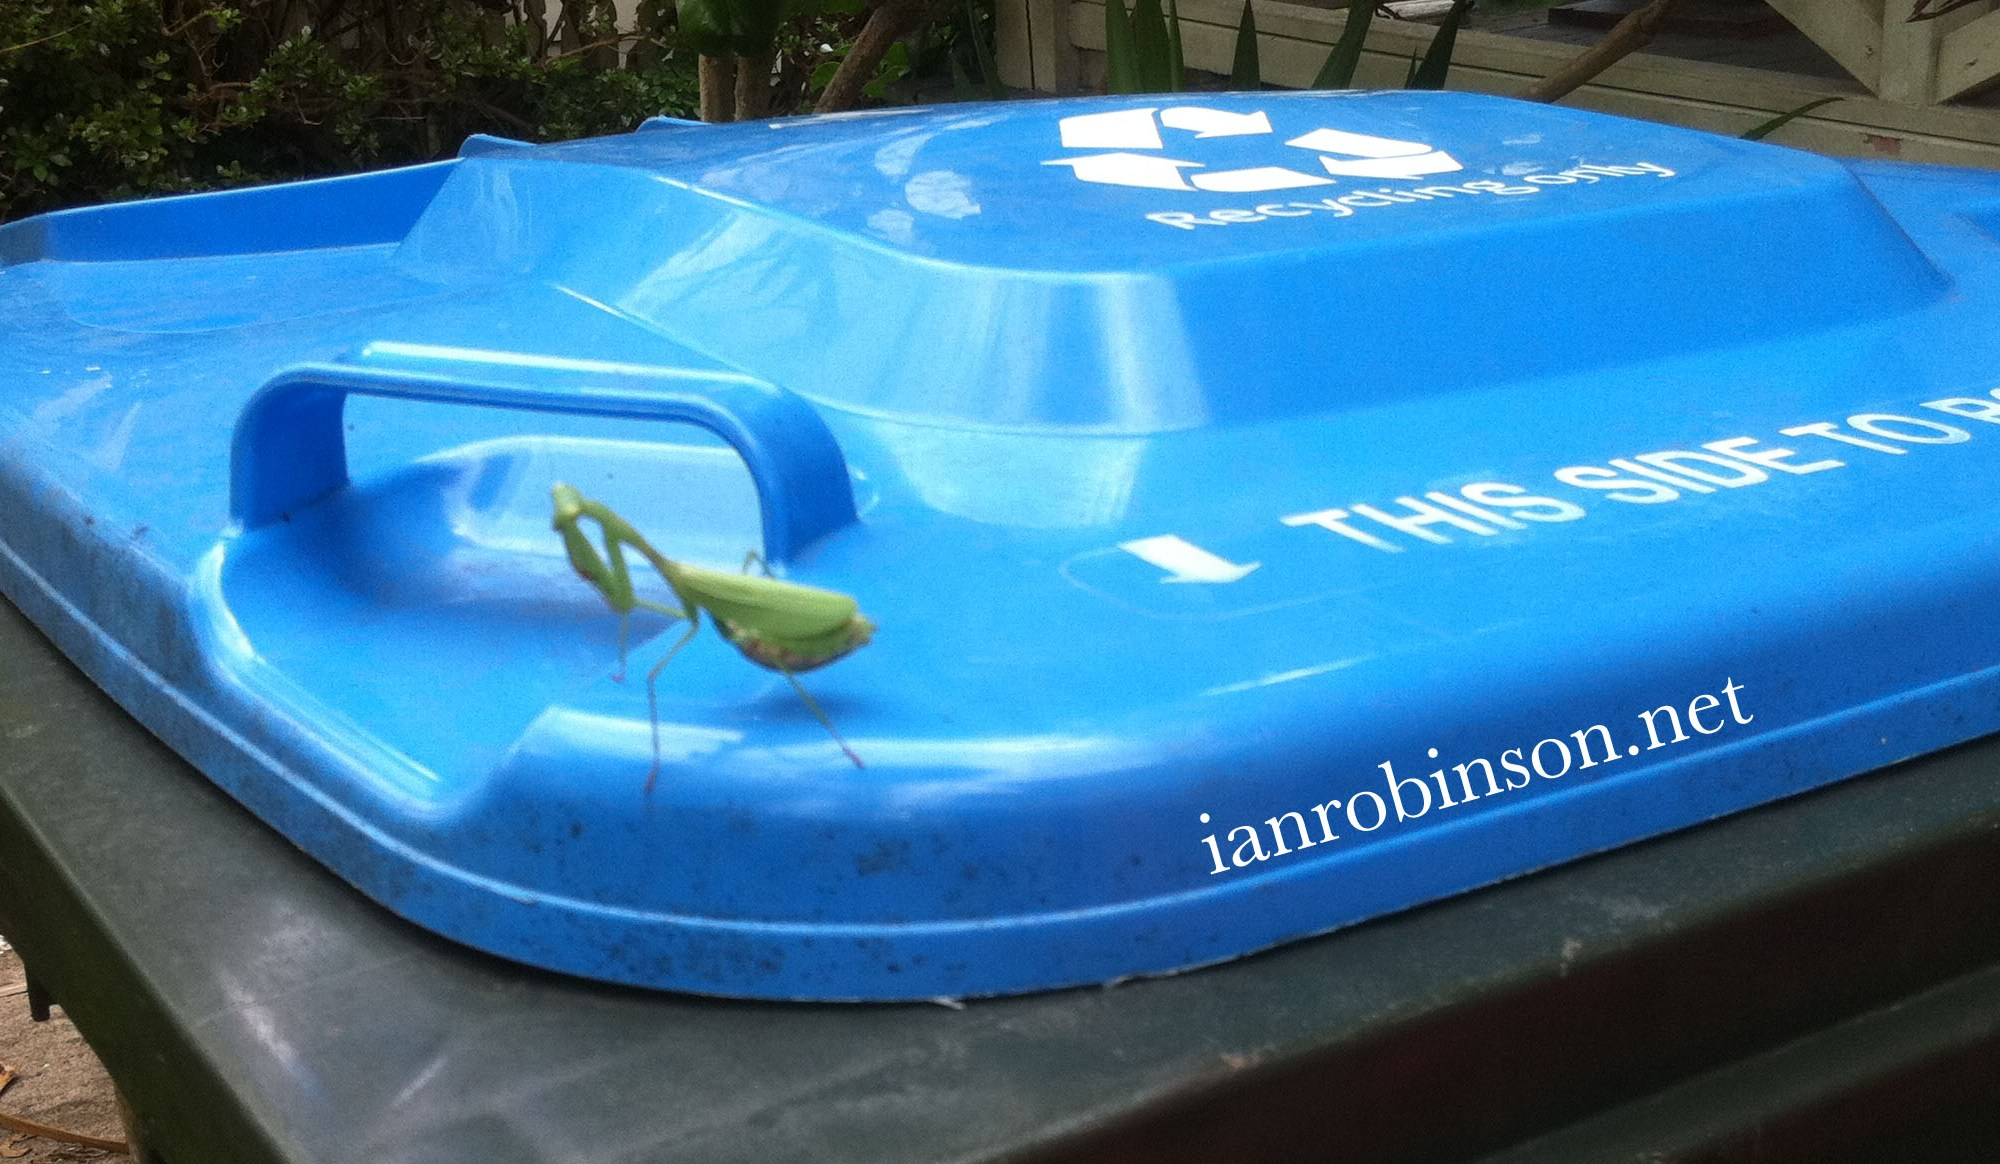 Grasshopper on Recycling